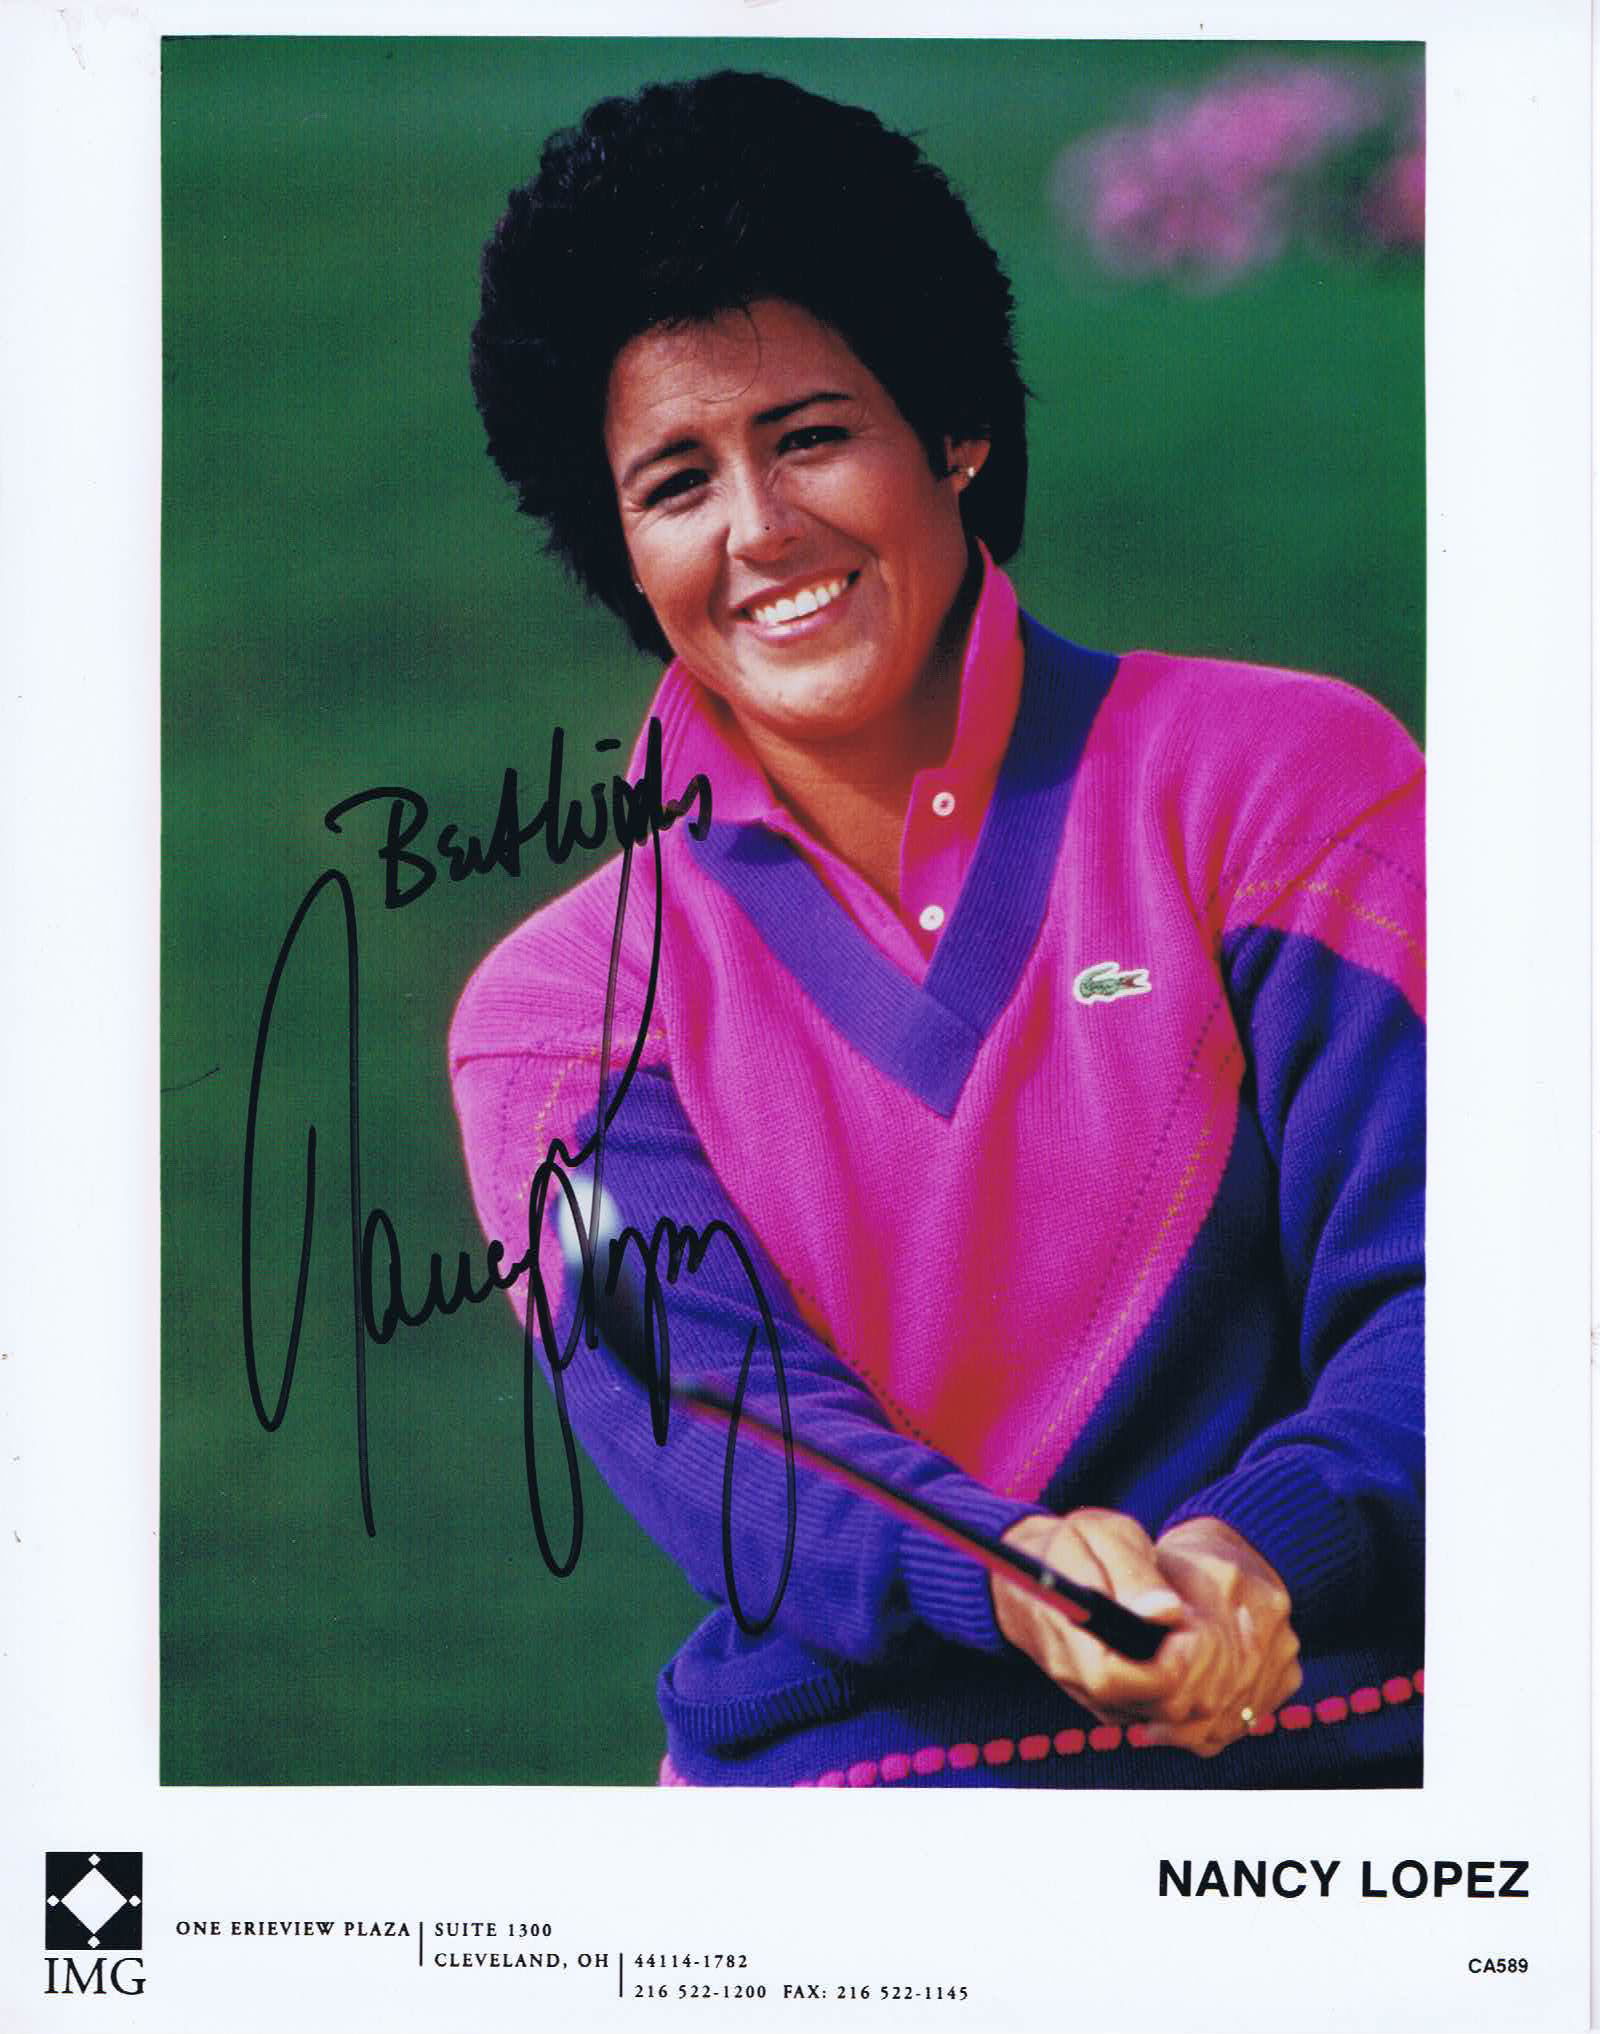 NANCY LOPEZ Autograph 8 x 10 Photo Golf